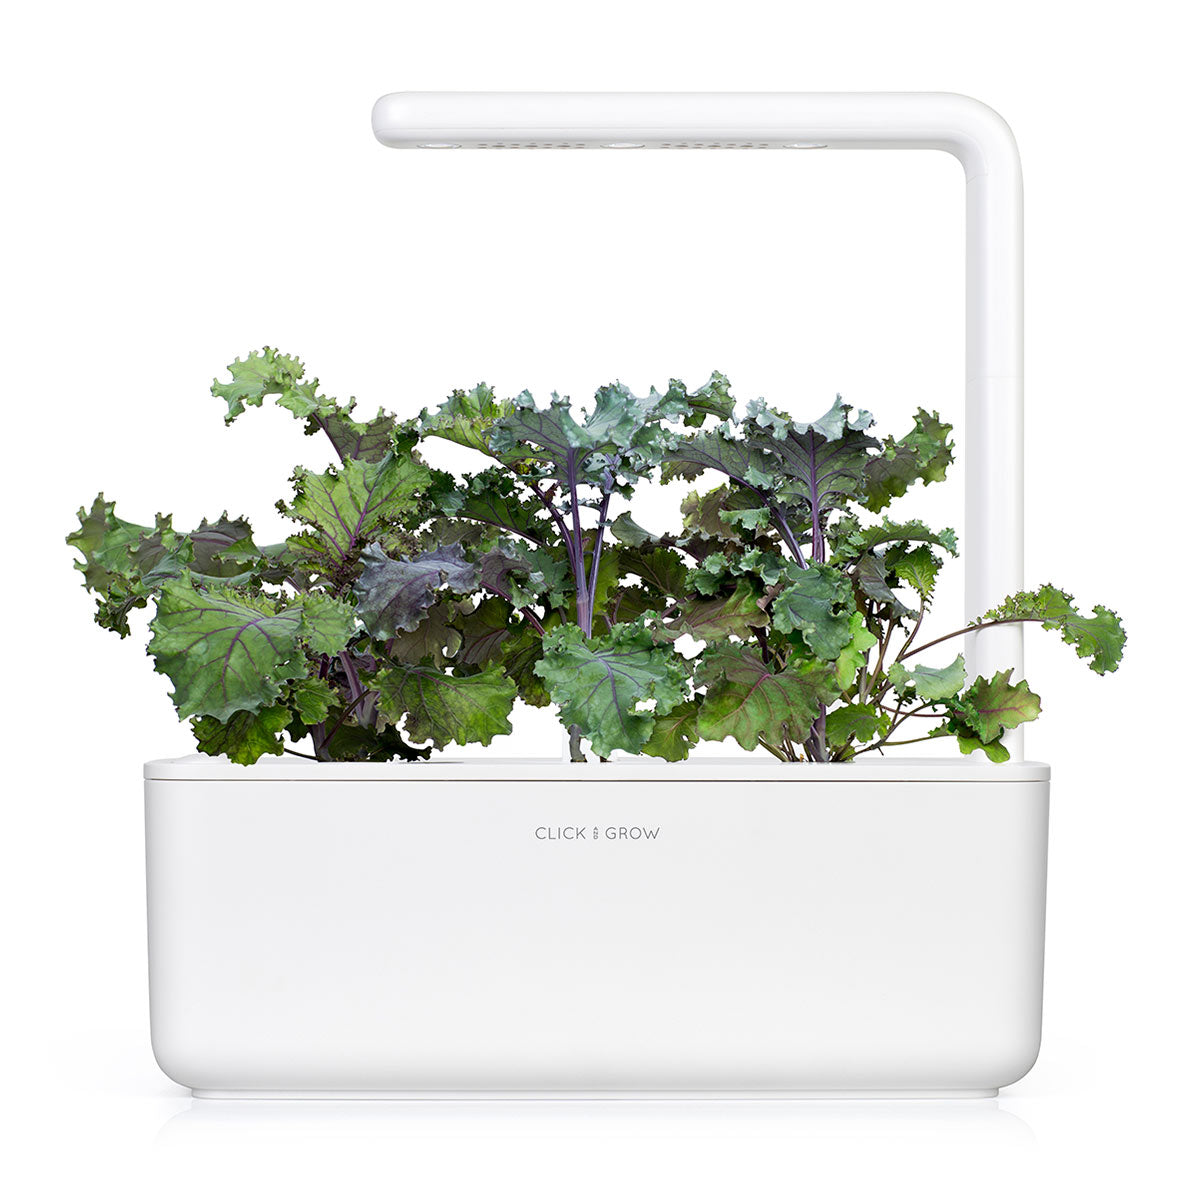 Red Kale capsule - Click & Grow indoor garden